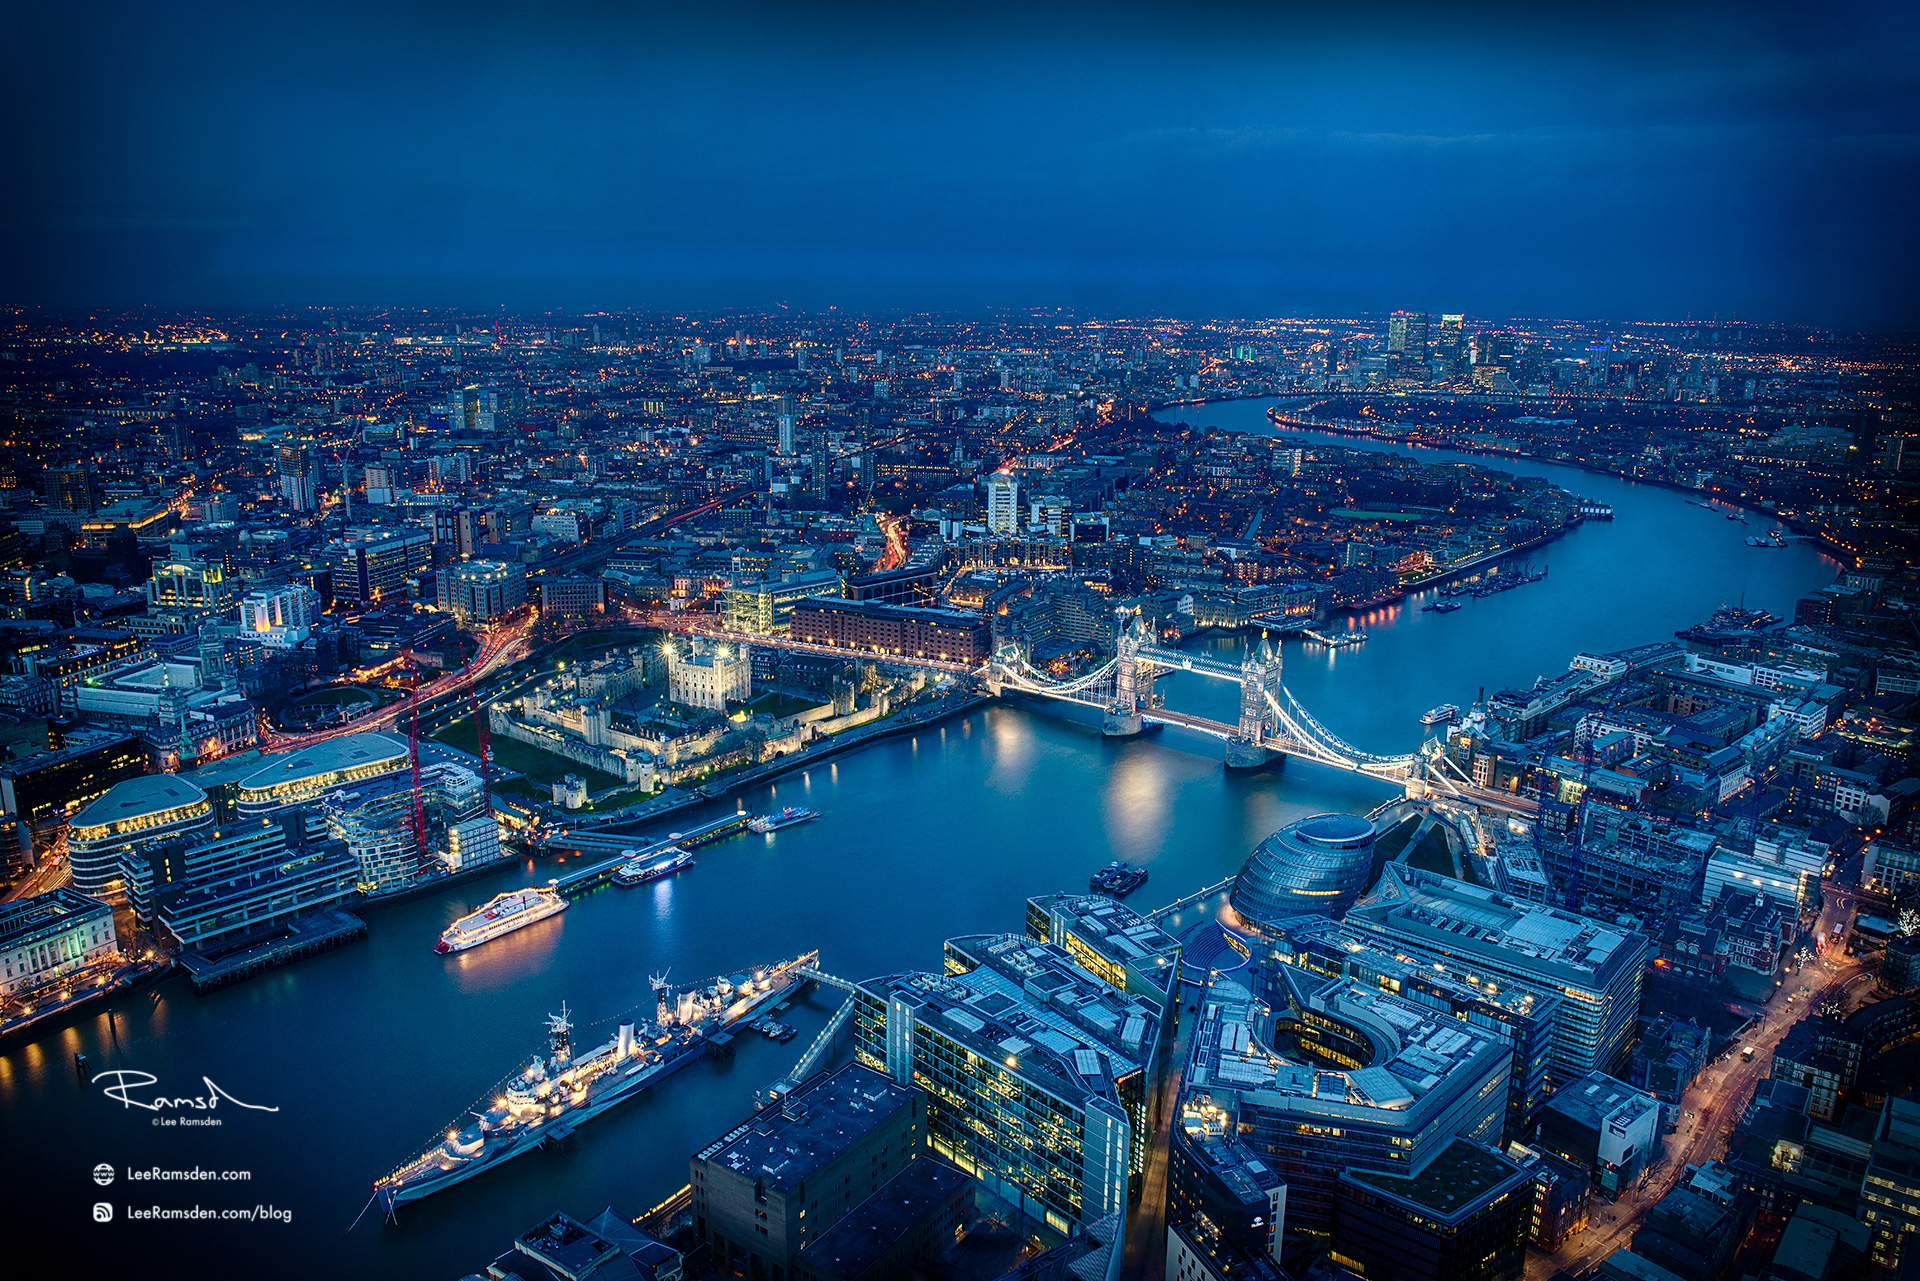 london View from the Shard HMS Belfast river Thames Tower Bridge